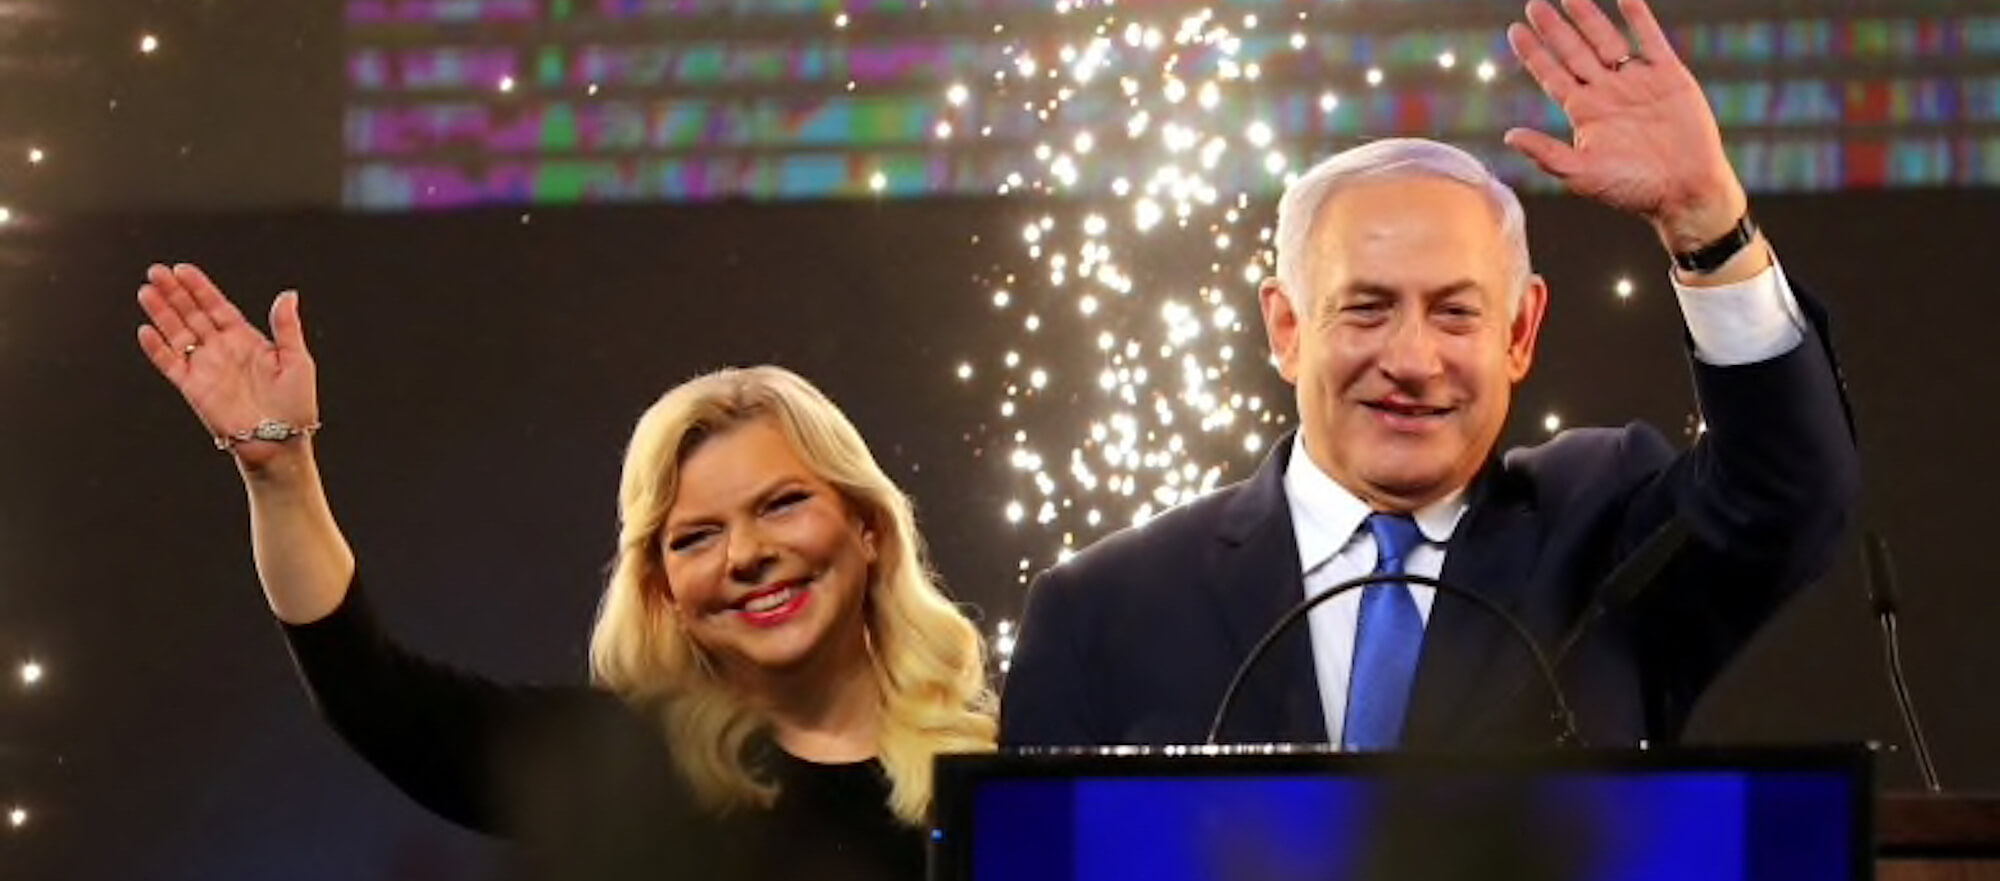 Benjamin Netanyahu and his wife Sara wave as Netanyahu speaks following the announcement of exit polls in Israel's parliamentary election at the party headquarters in Tel Aviv. (Photo: Ammar Awad/Reuters)